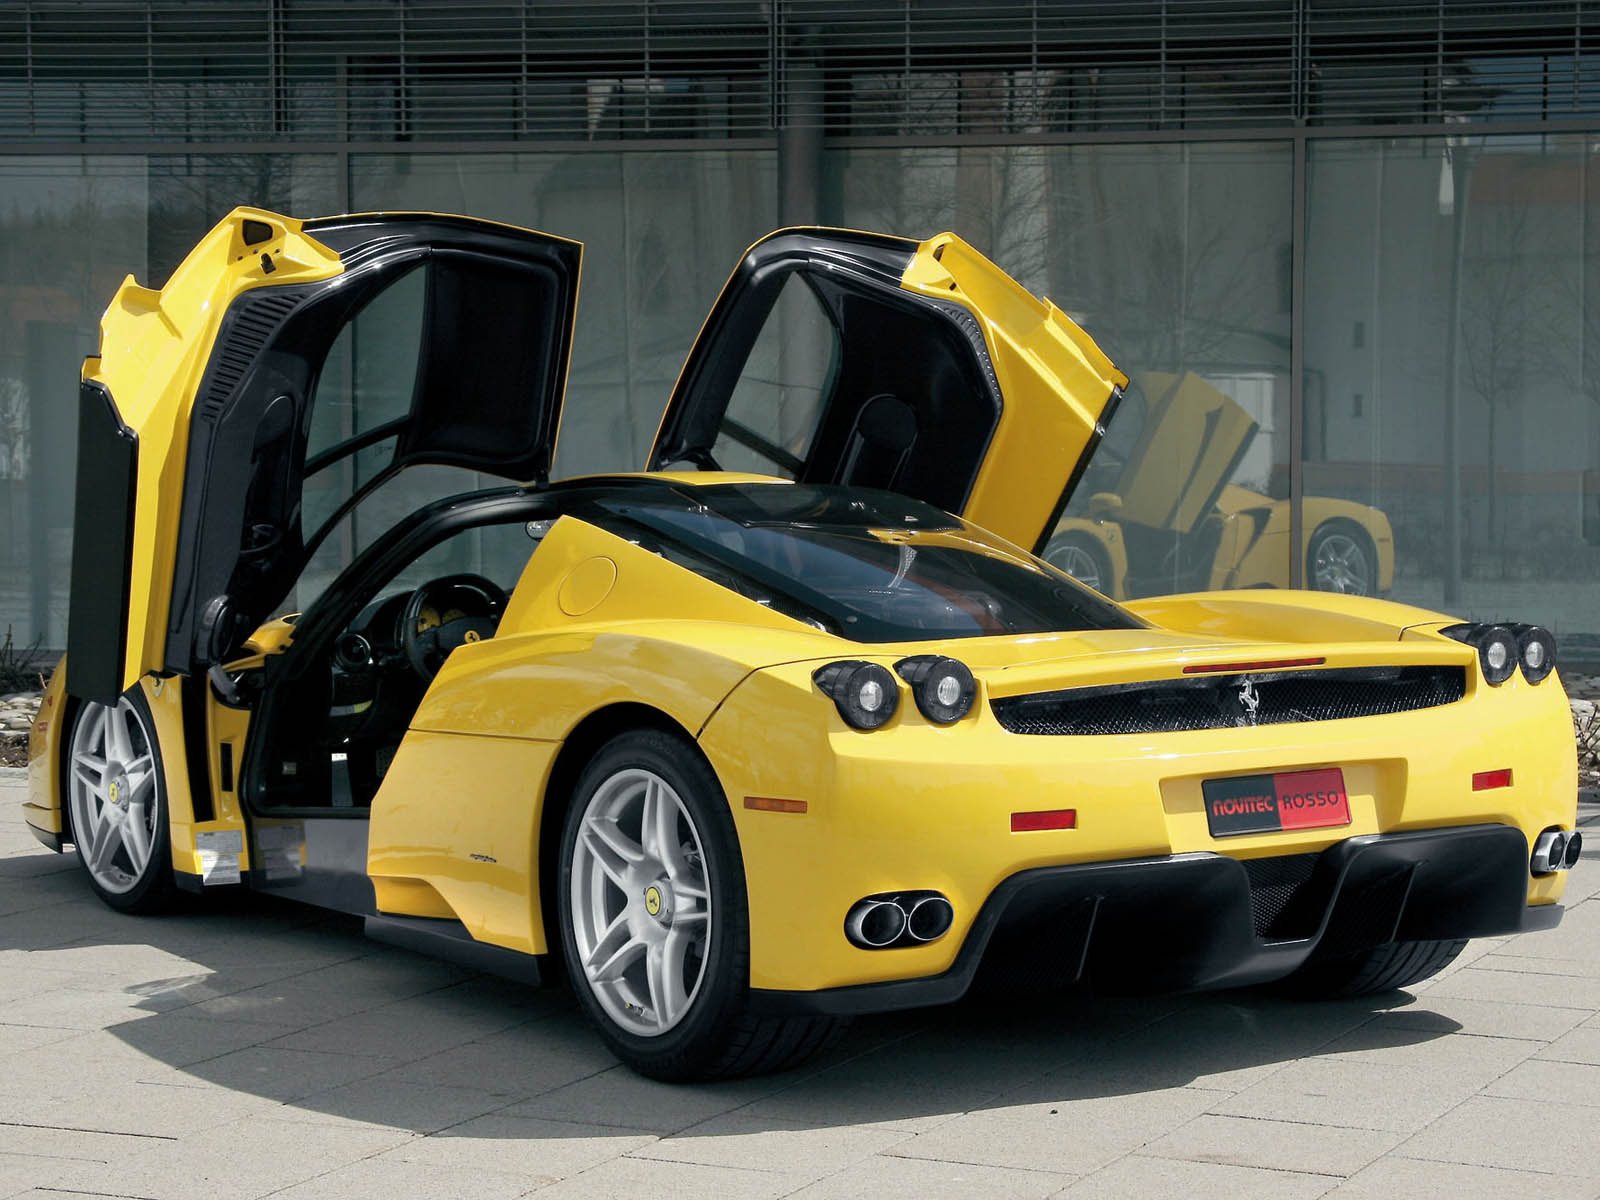 Enzo Ferrari - Owner of